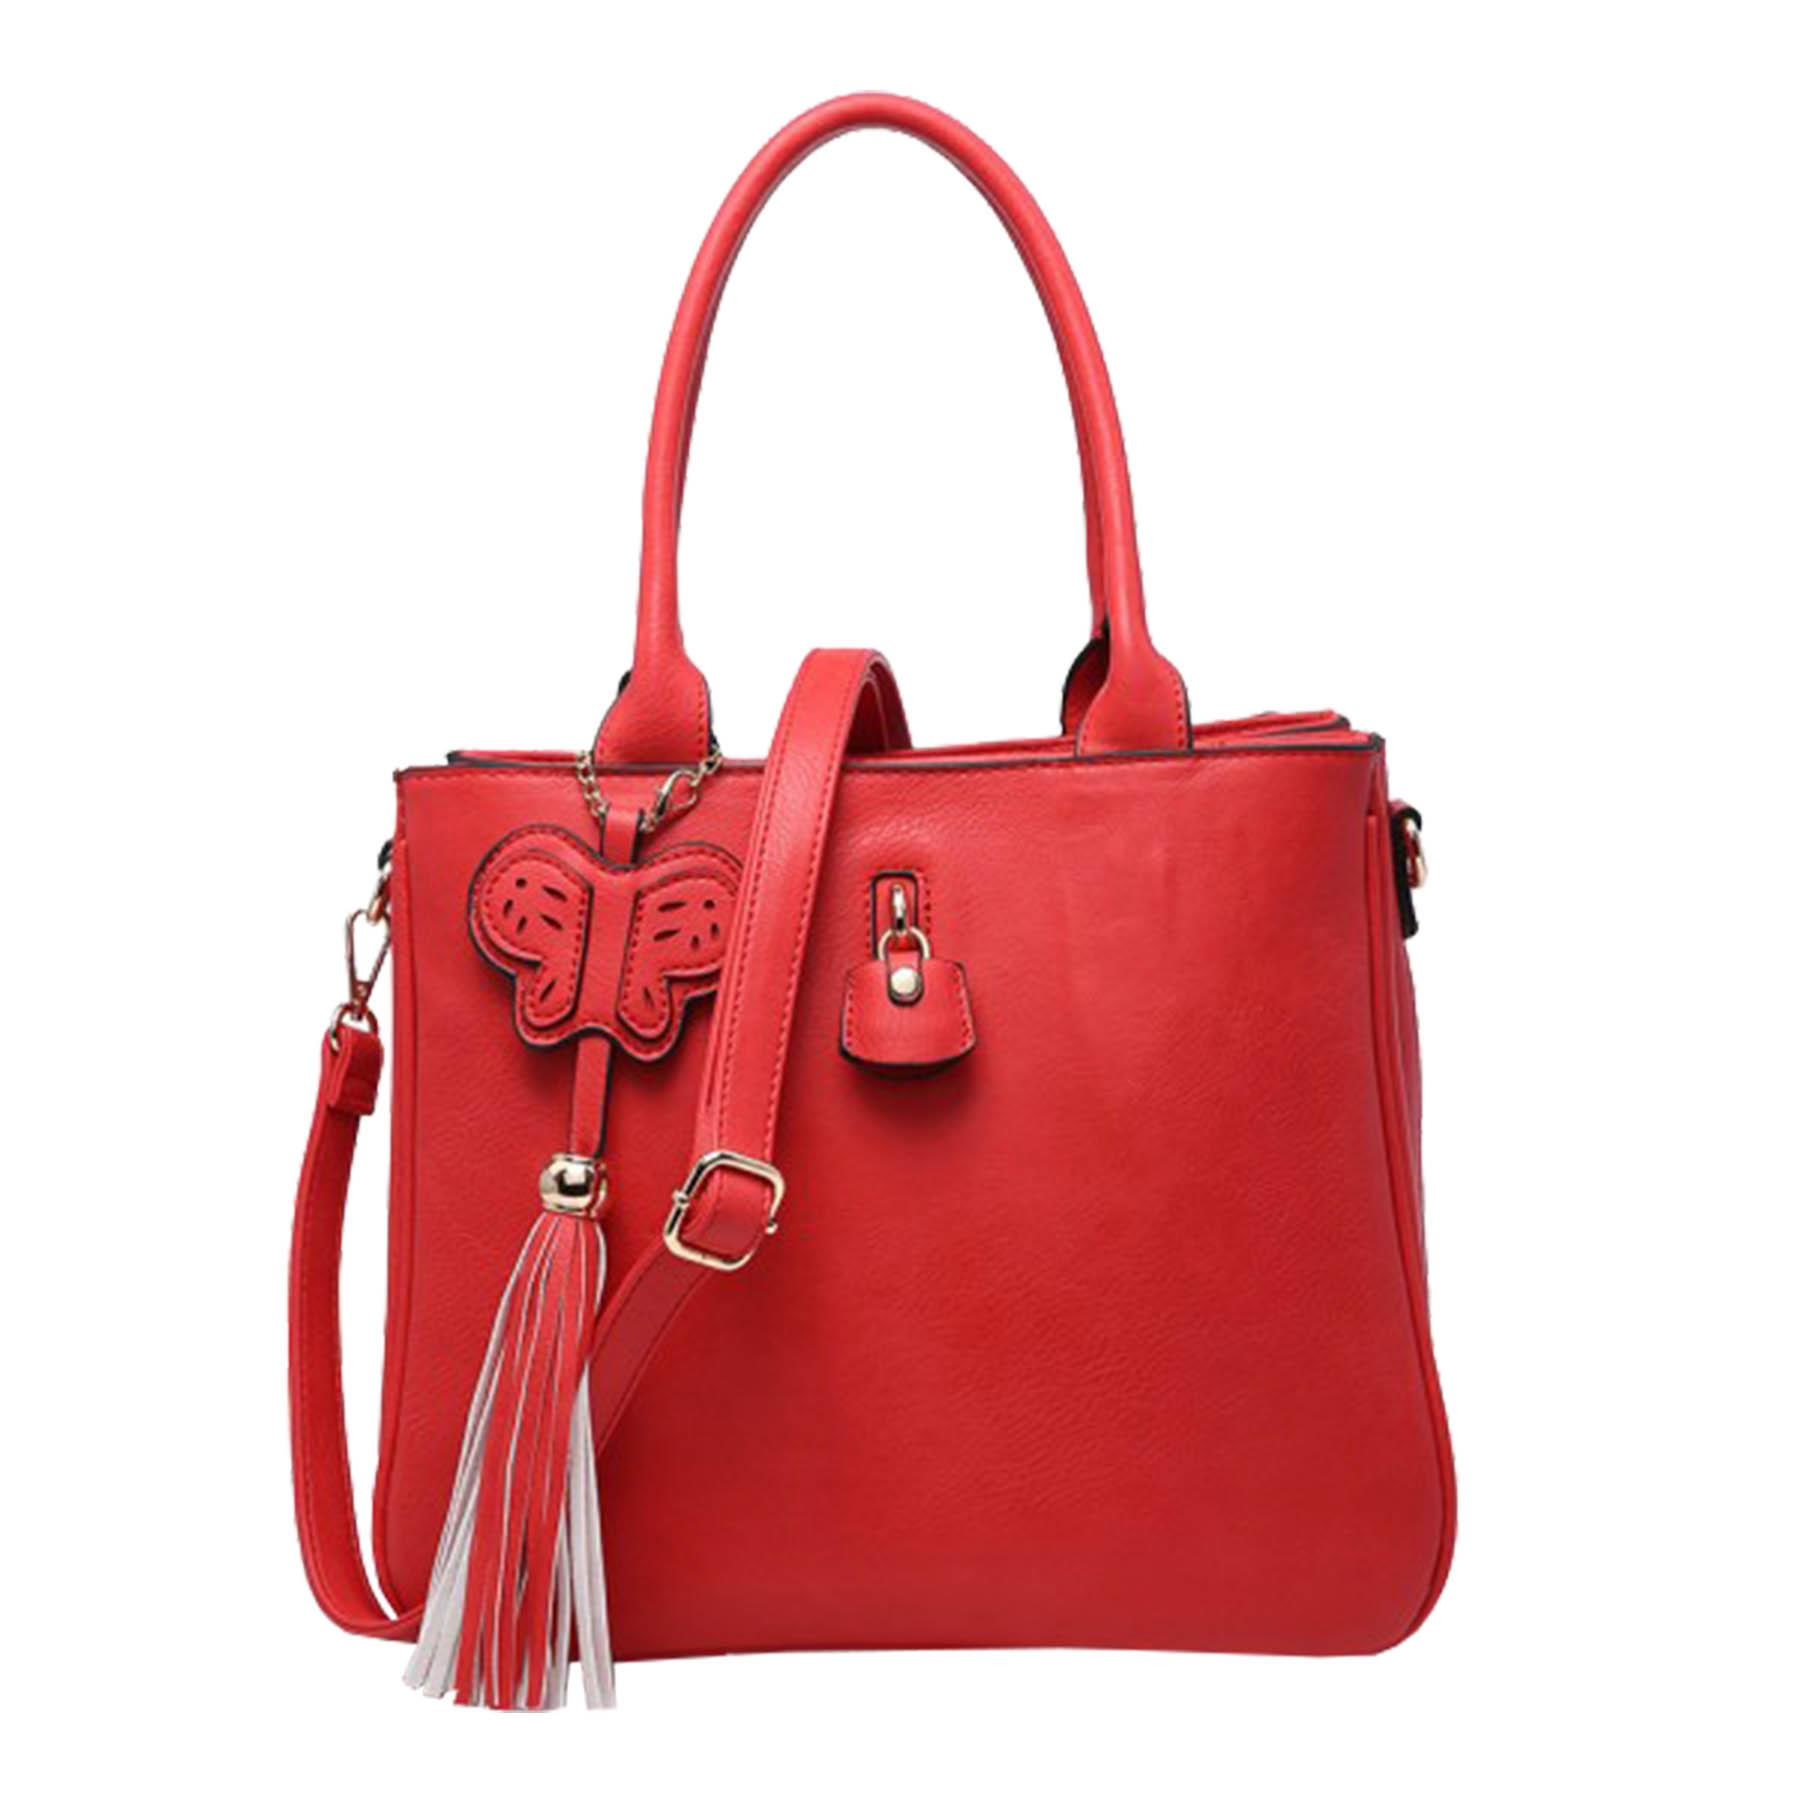 New-Synthetic-Leather-Butterfly-Tassel-Charm-Women-s-Shoulder-Tote-Bag thumbnail 8